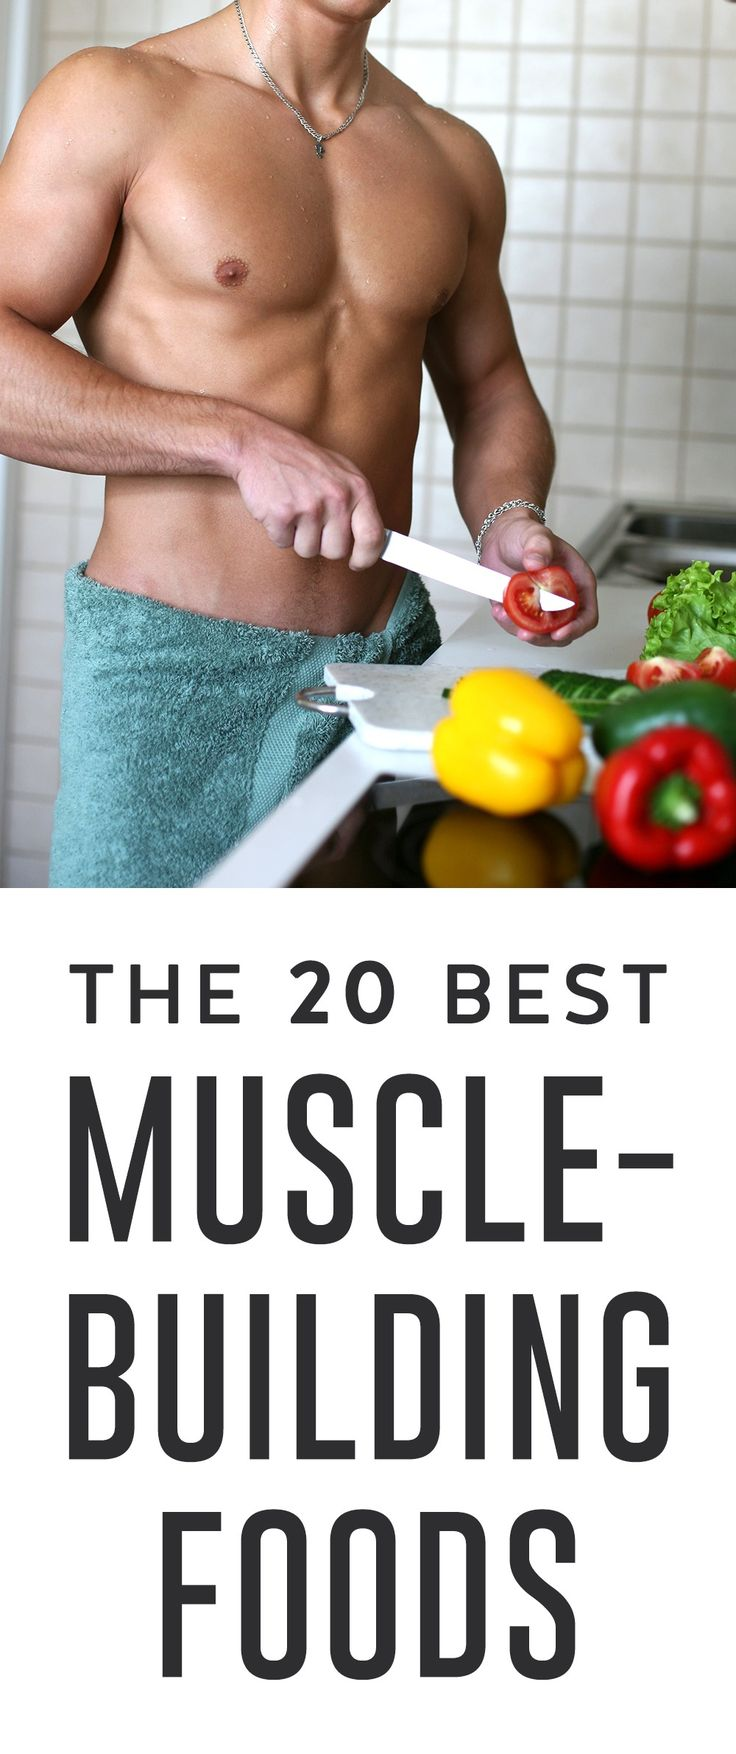 Your ability gain muscle has as much to do with what you eat as how hard you push yourself in the gym. But if you include these foods, suggested by Dan Go, a personal trainer and nutritionist, you'll ensure that your time spent in the gym isn't a waste of sweat.